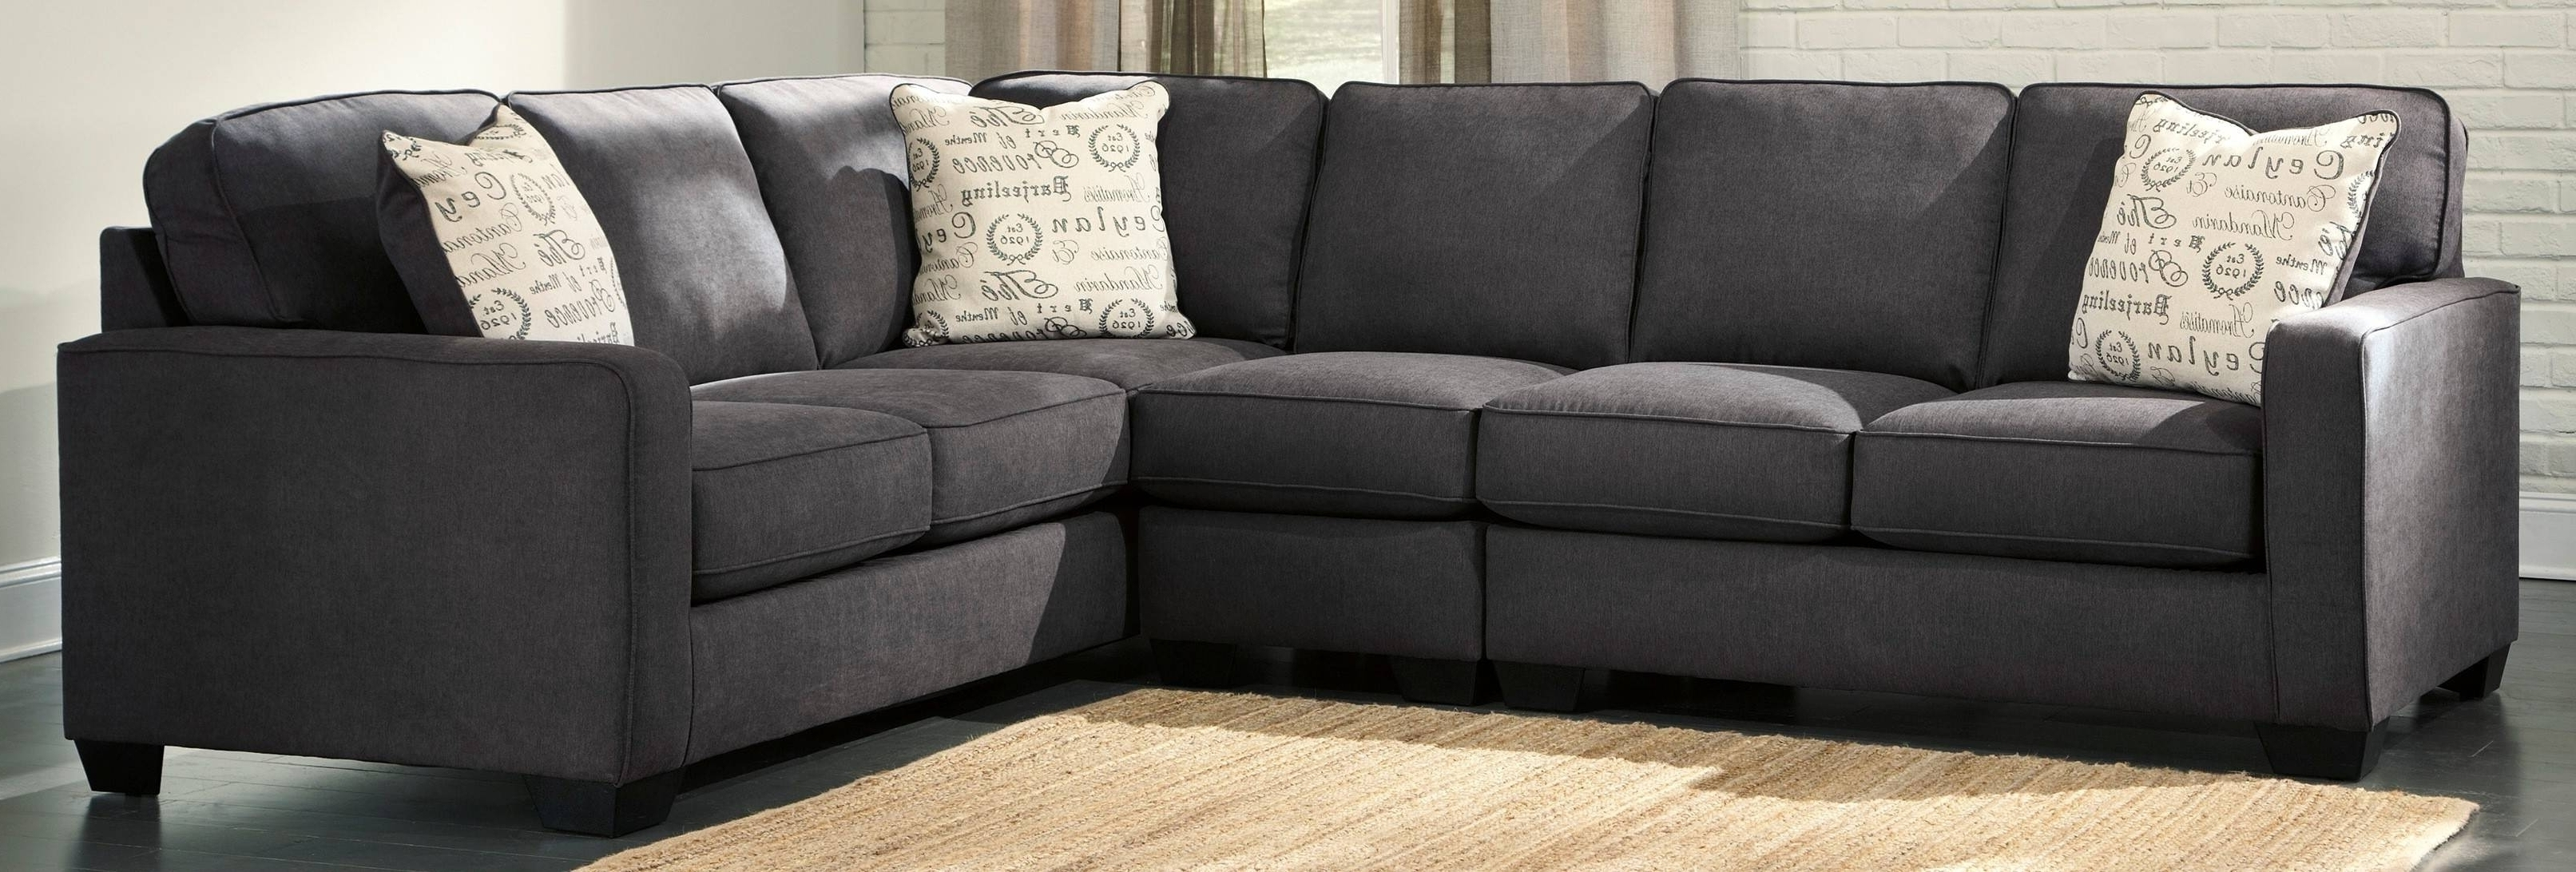 Collection Individual Piece Sectional Sofas – Buildsimplehome In Well Liked Individual Piece Sectional Sofas (View 9 of 20)